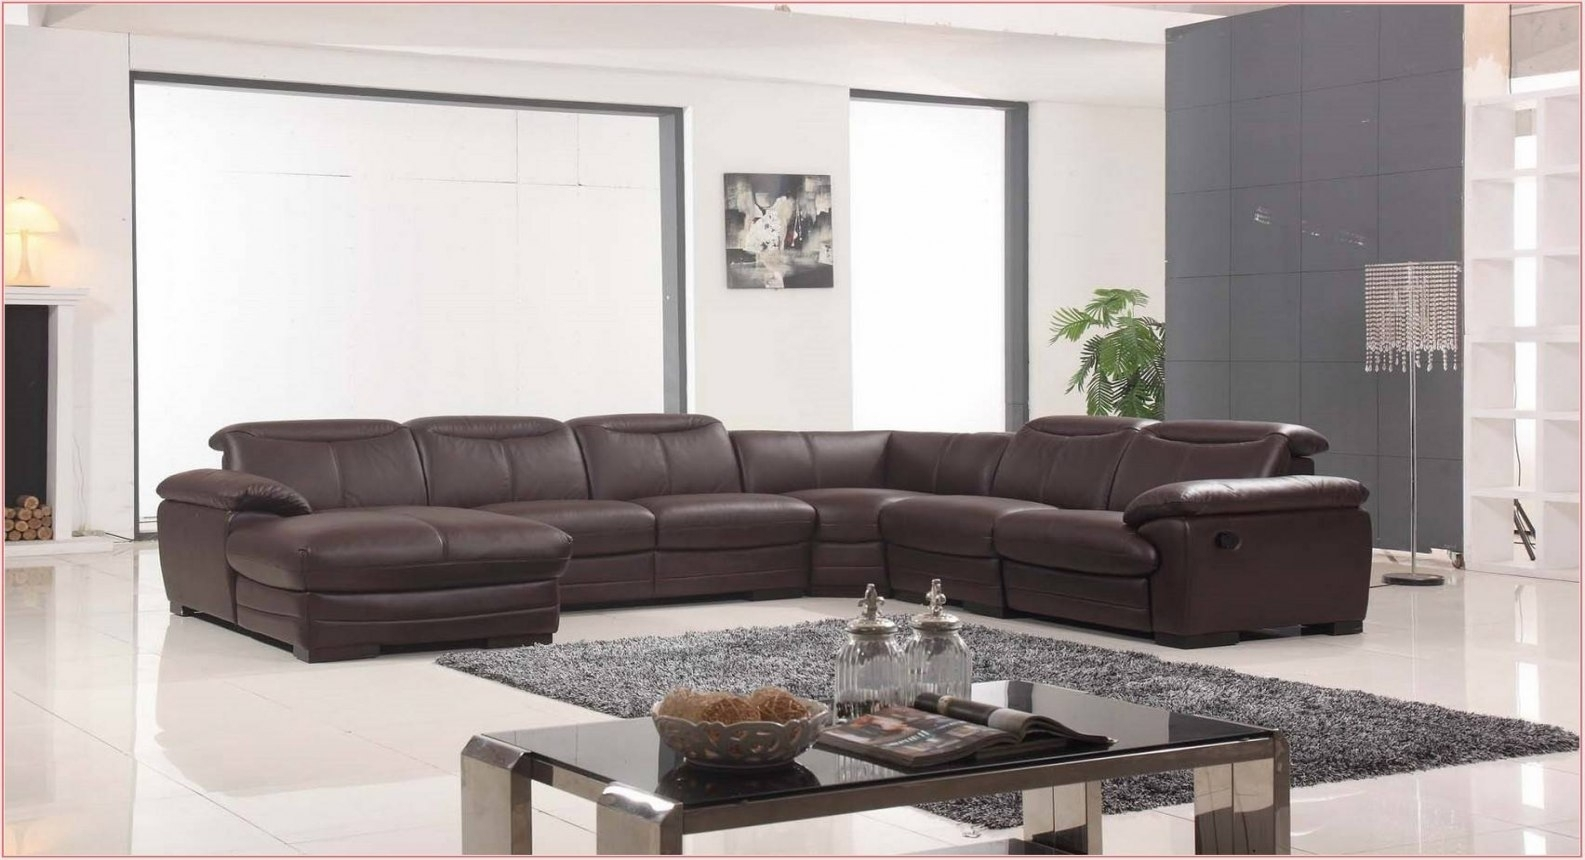 Backless Sectional Sofa Misskellybra Sofa Site Within Backless Sectional Sofa (Image 7 of 15)